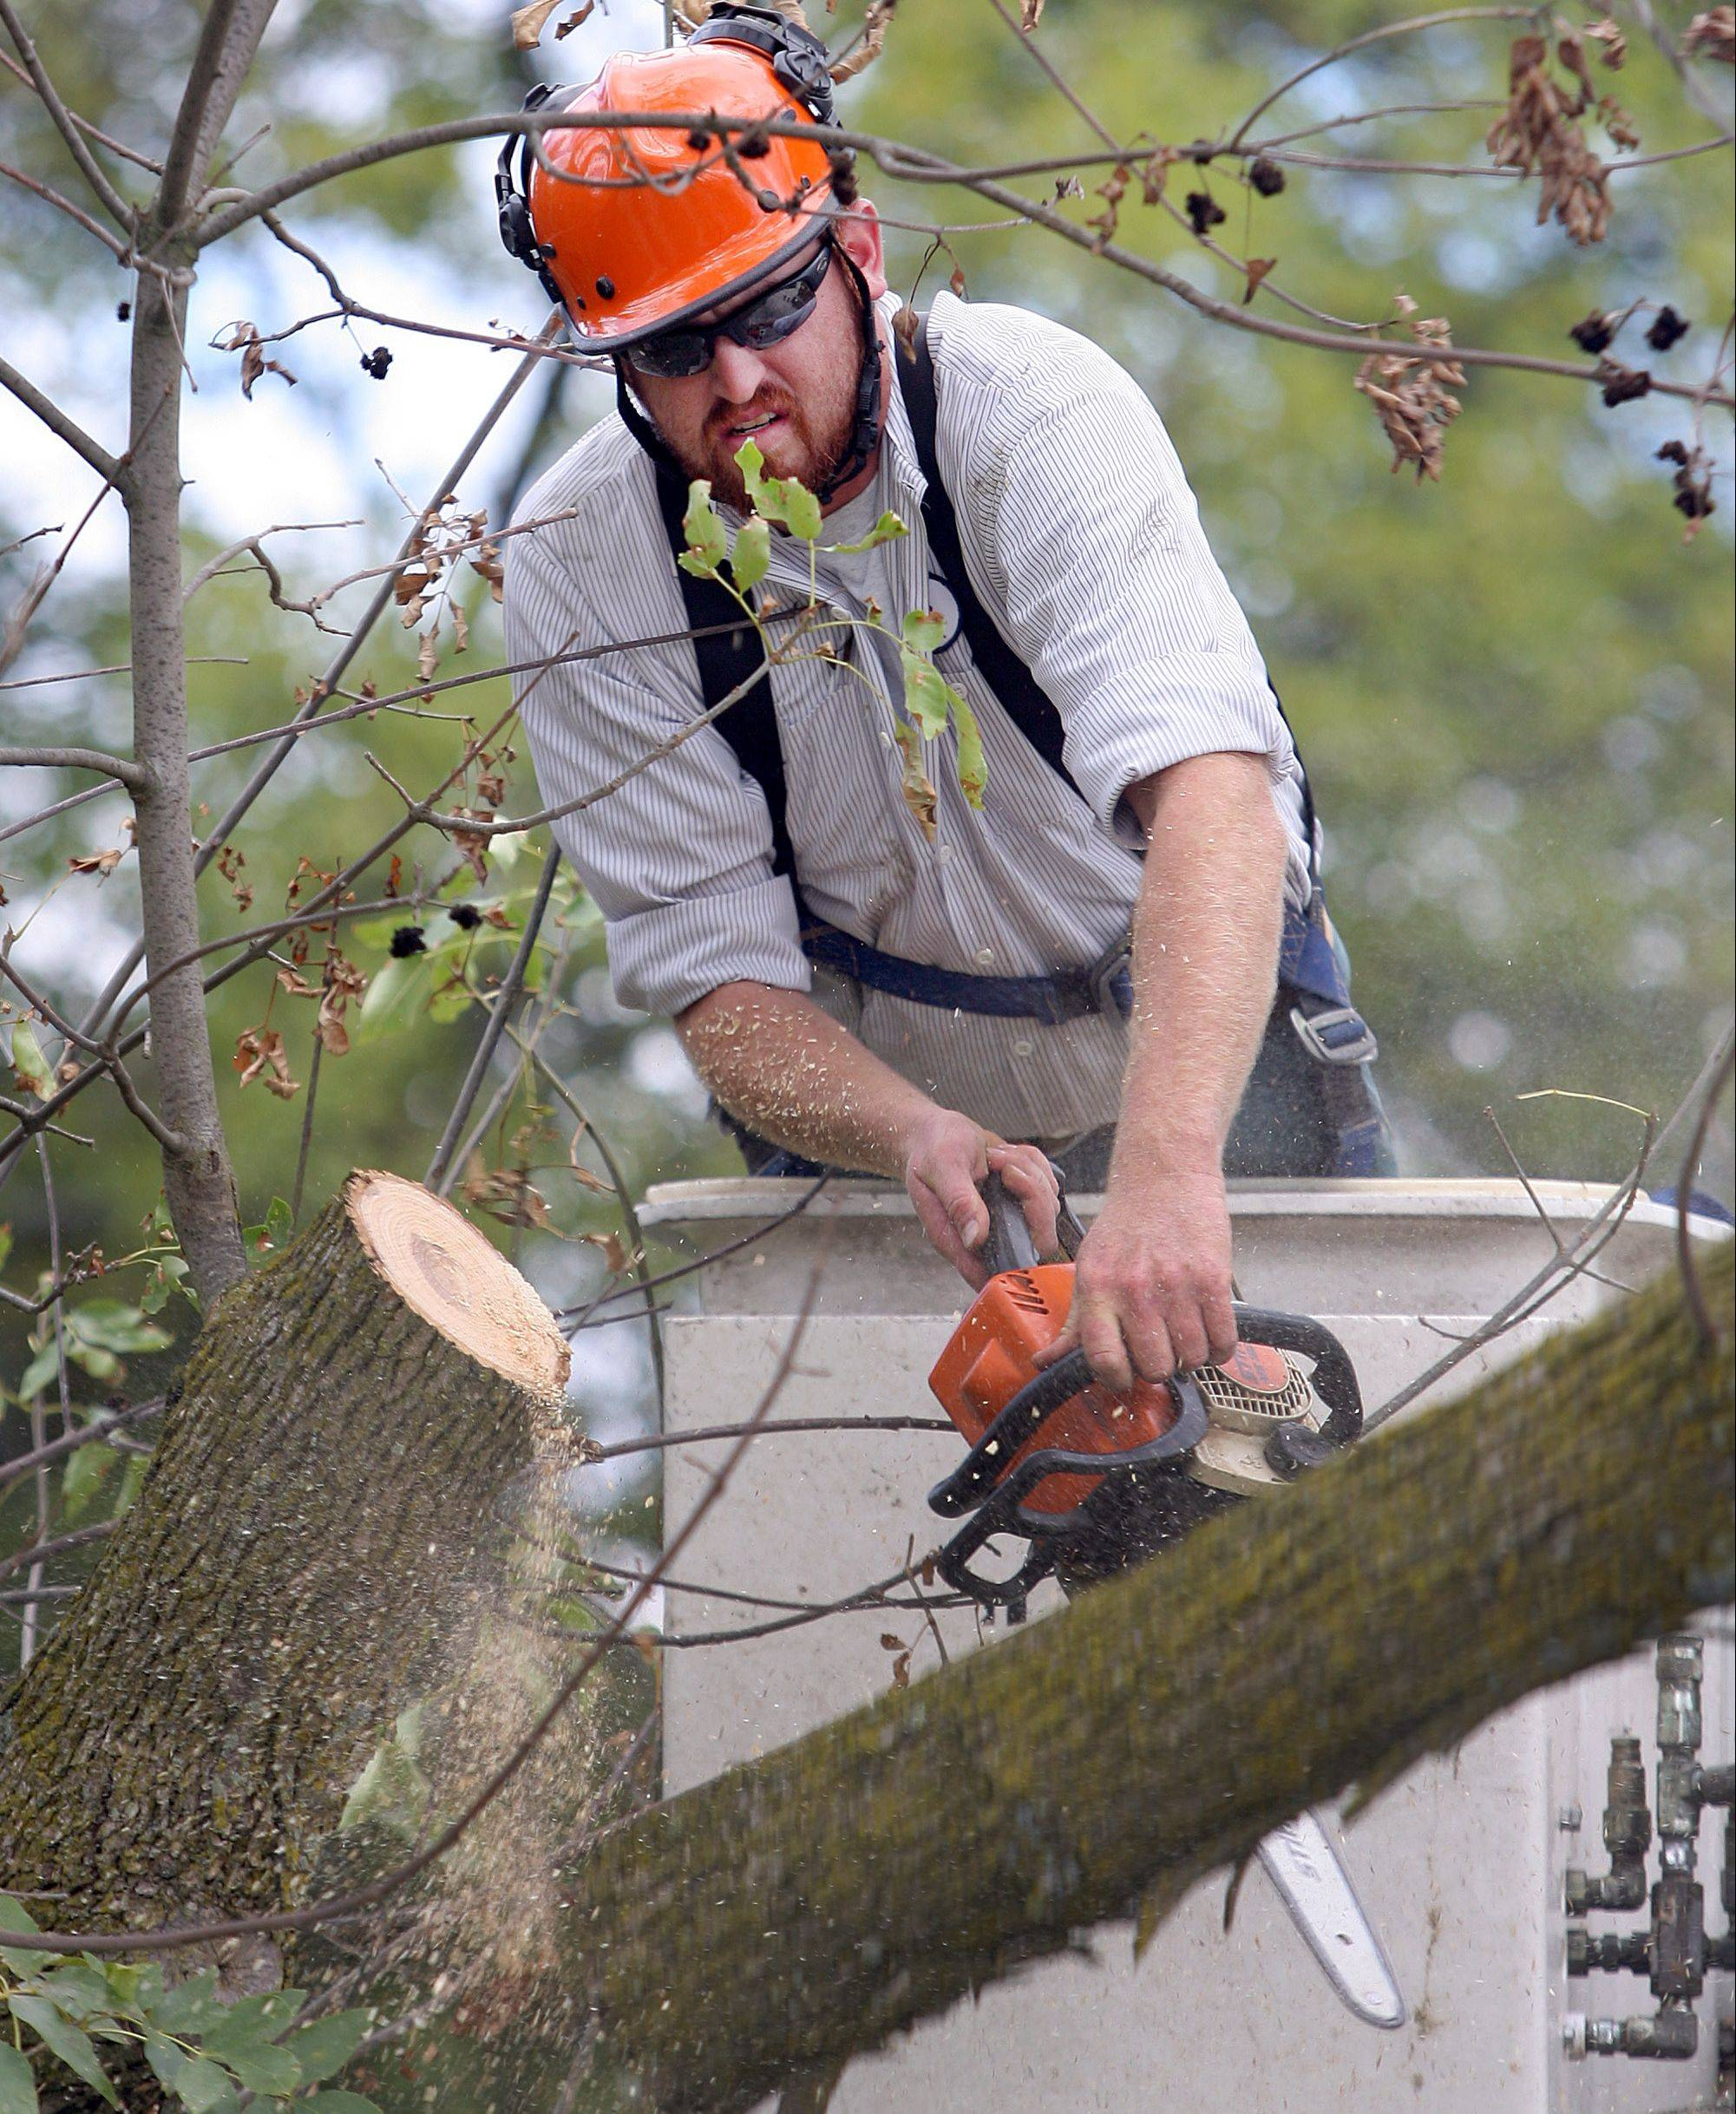 Libertyville hires help to battle emerald ash borer